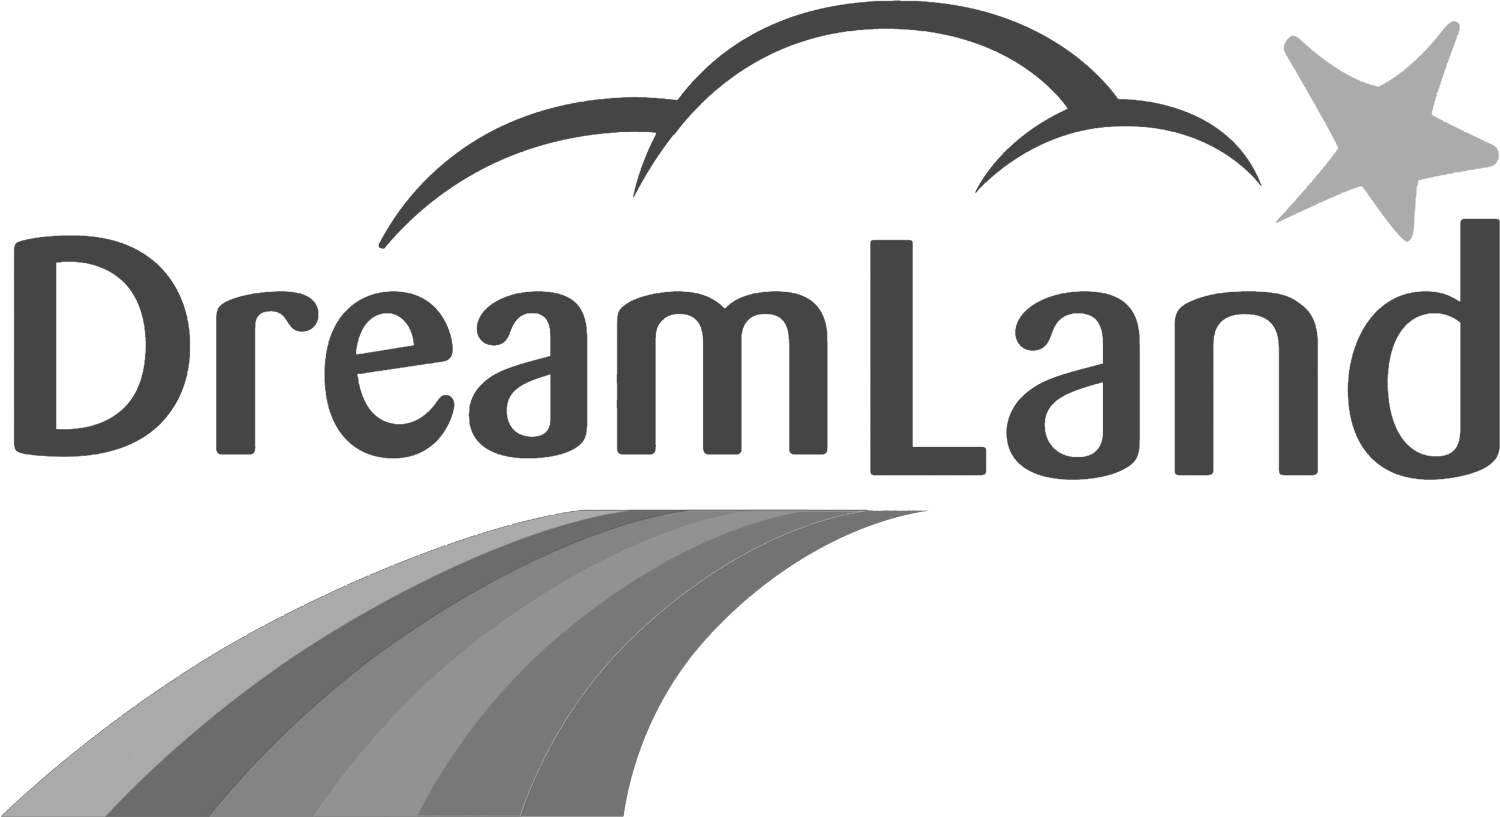 http://chillafish.com/wp-content/uploads/dreamland-logo-inv-lg1.png